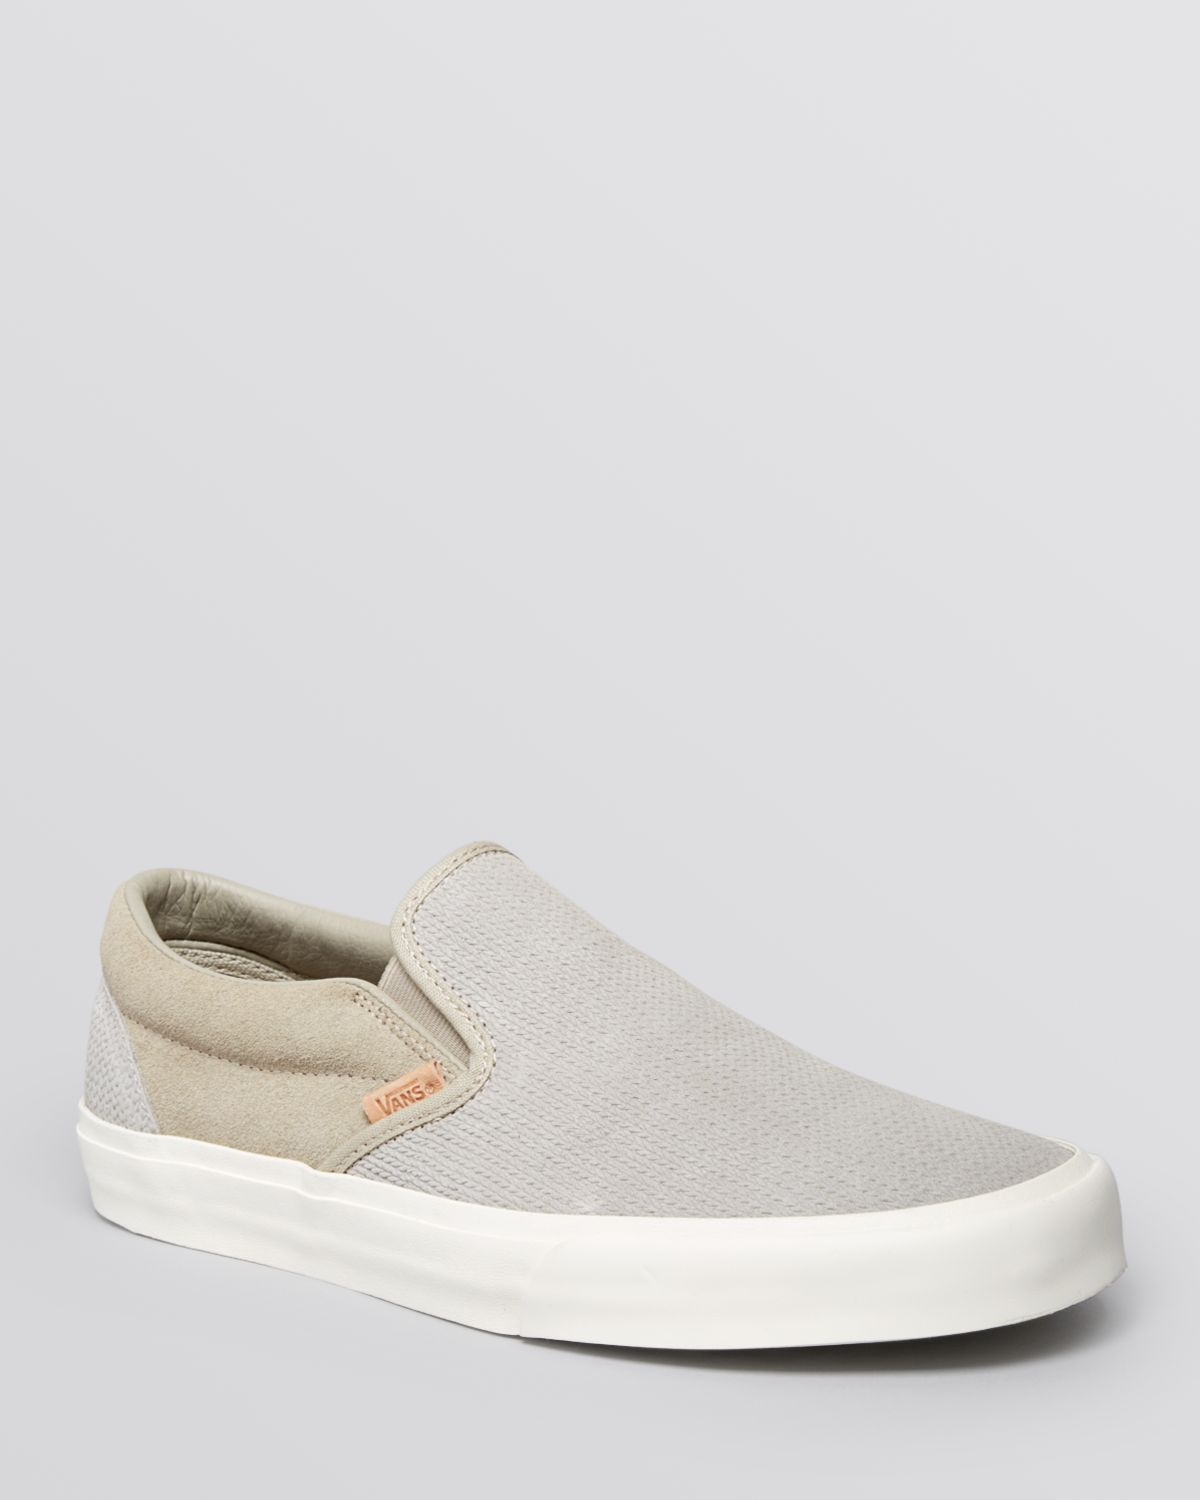 a303f16a6d Lyst - Vans Classic Ca Knit Suede Slip On Sneakers in Gray for Men